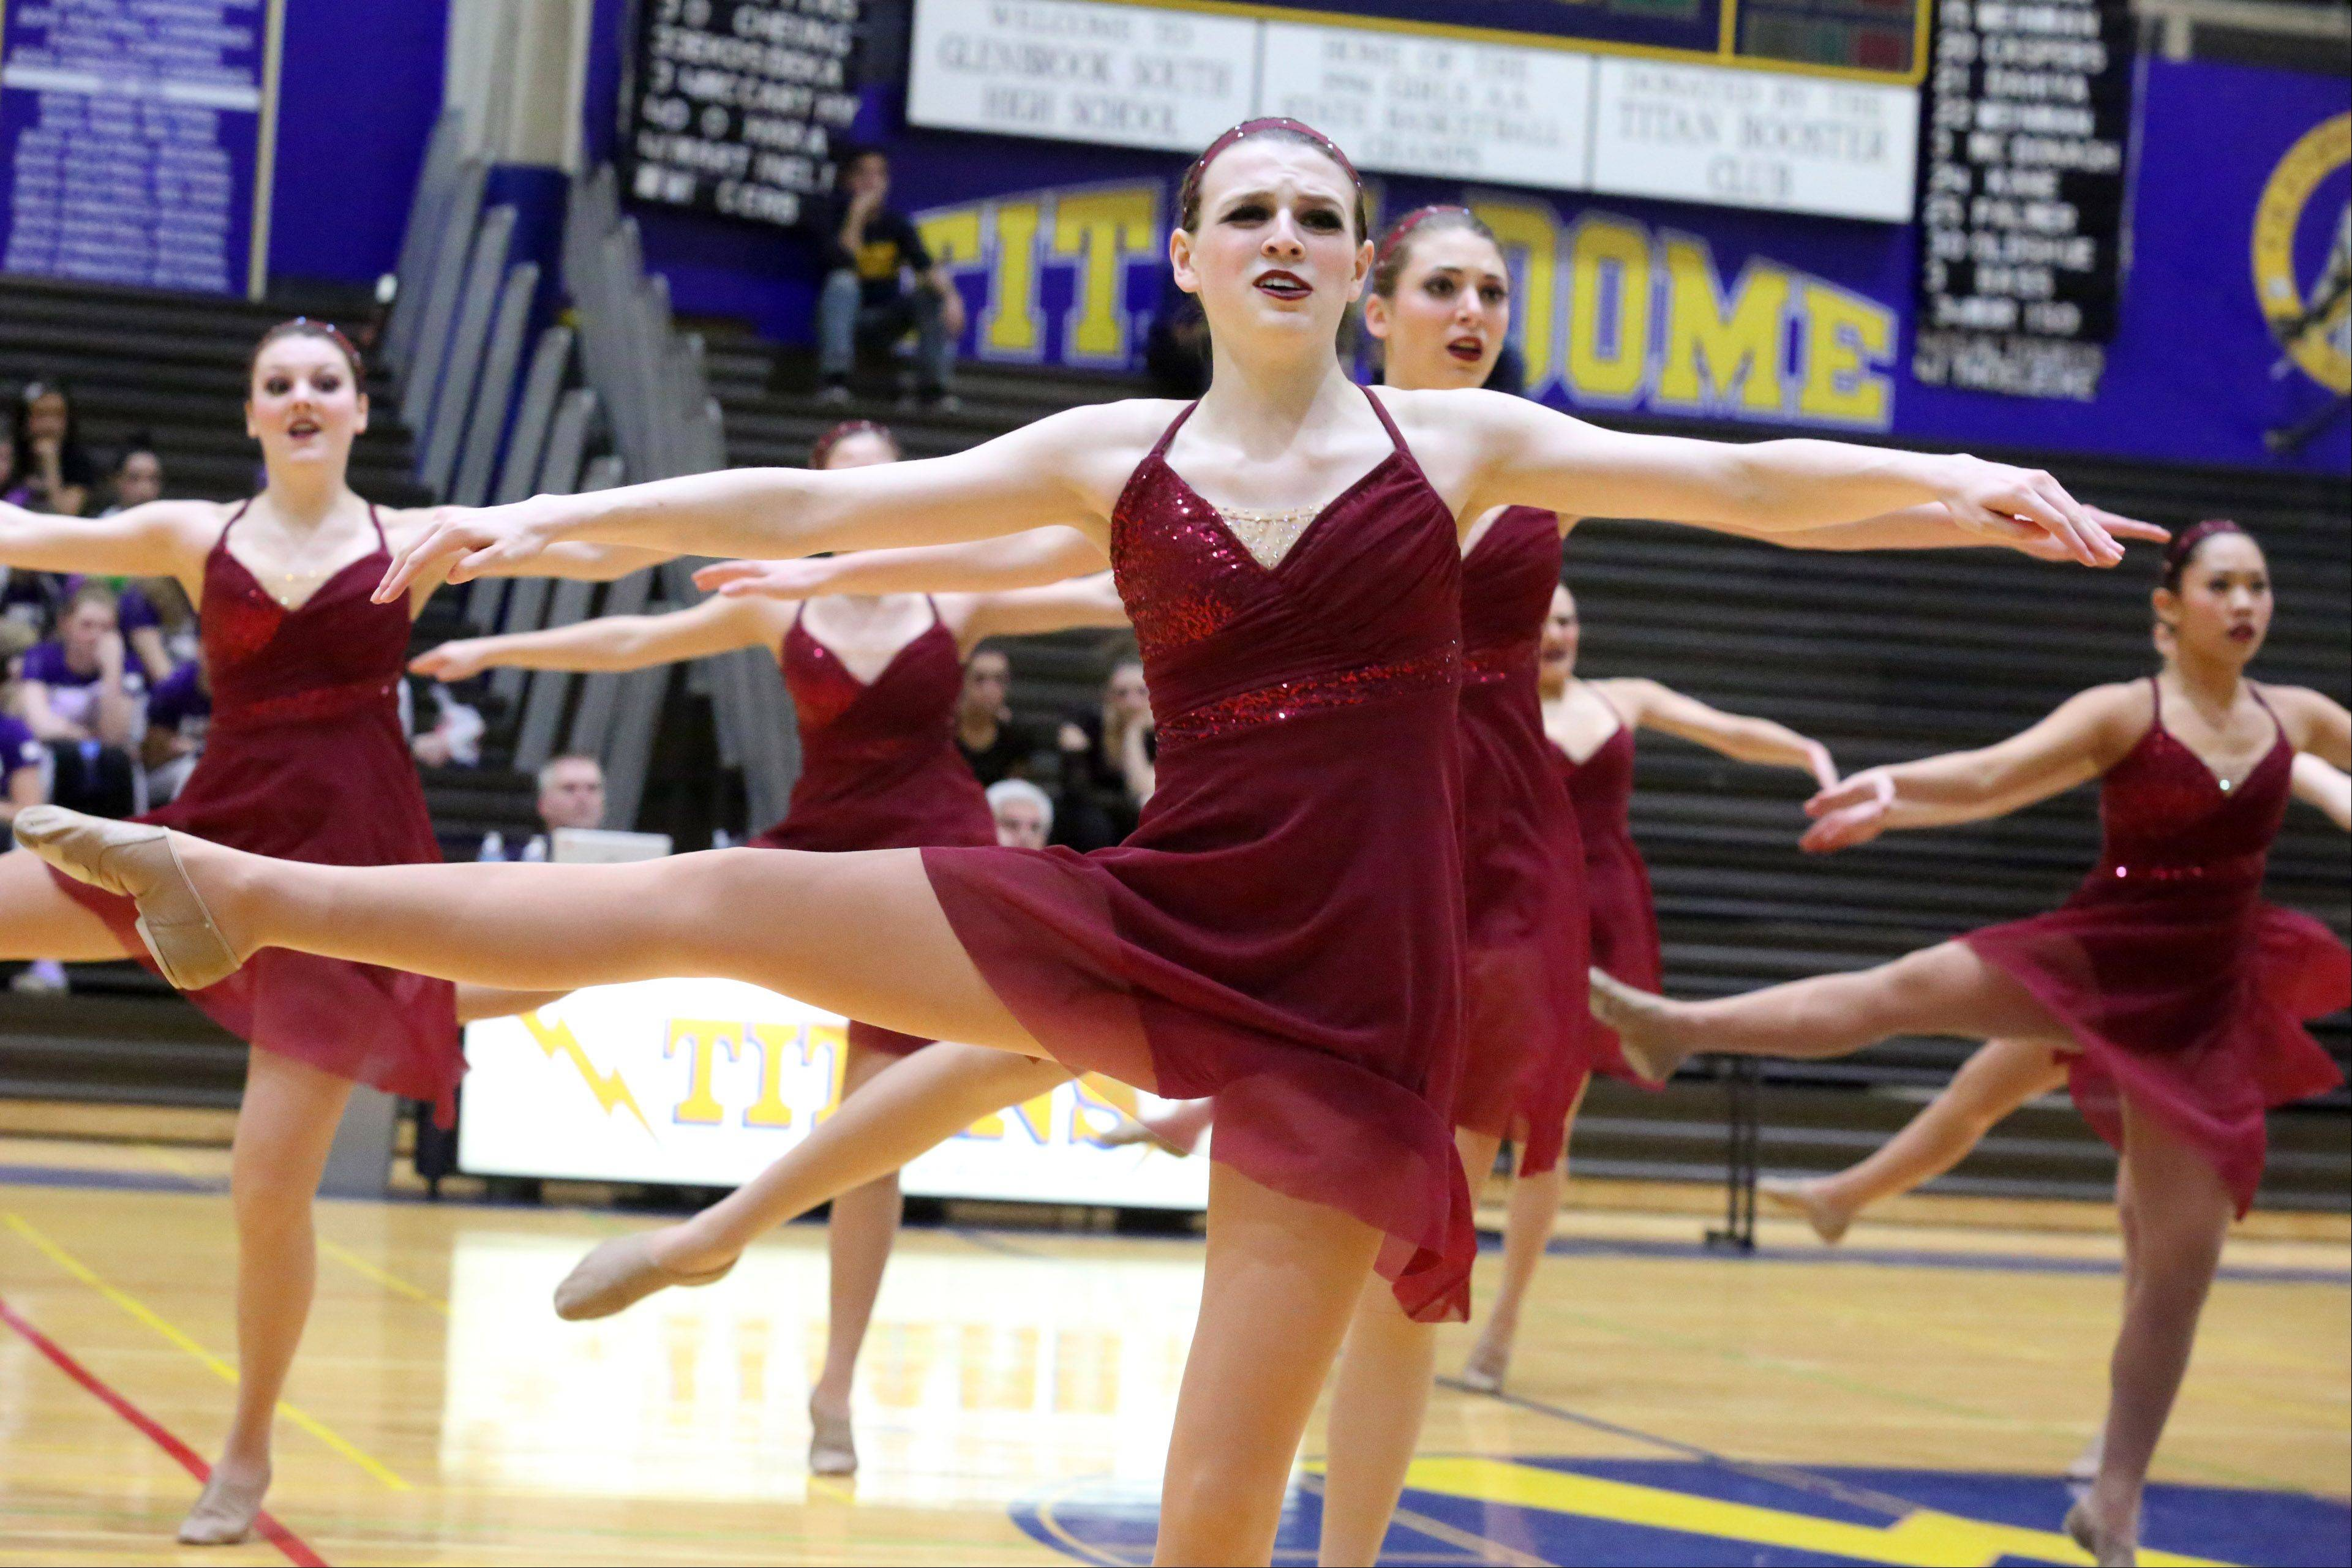 Libertyville High School's dance team competes at the IHSA competitive dance sectional at Glenbrook South High School on Saturday in Glenview.